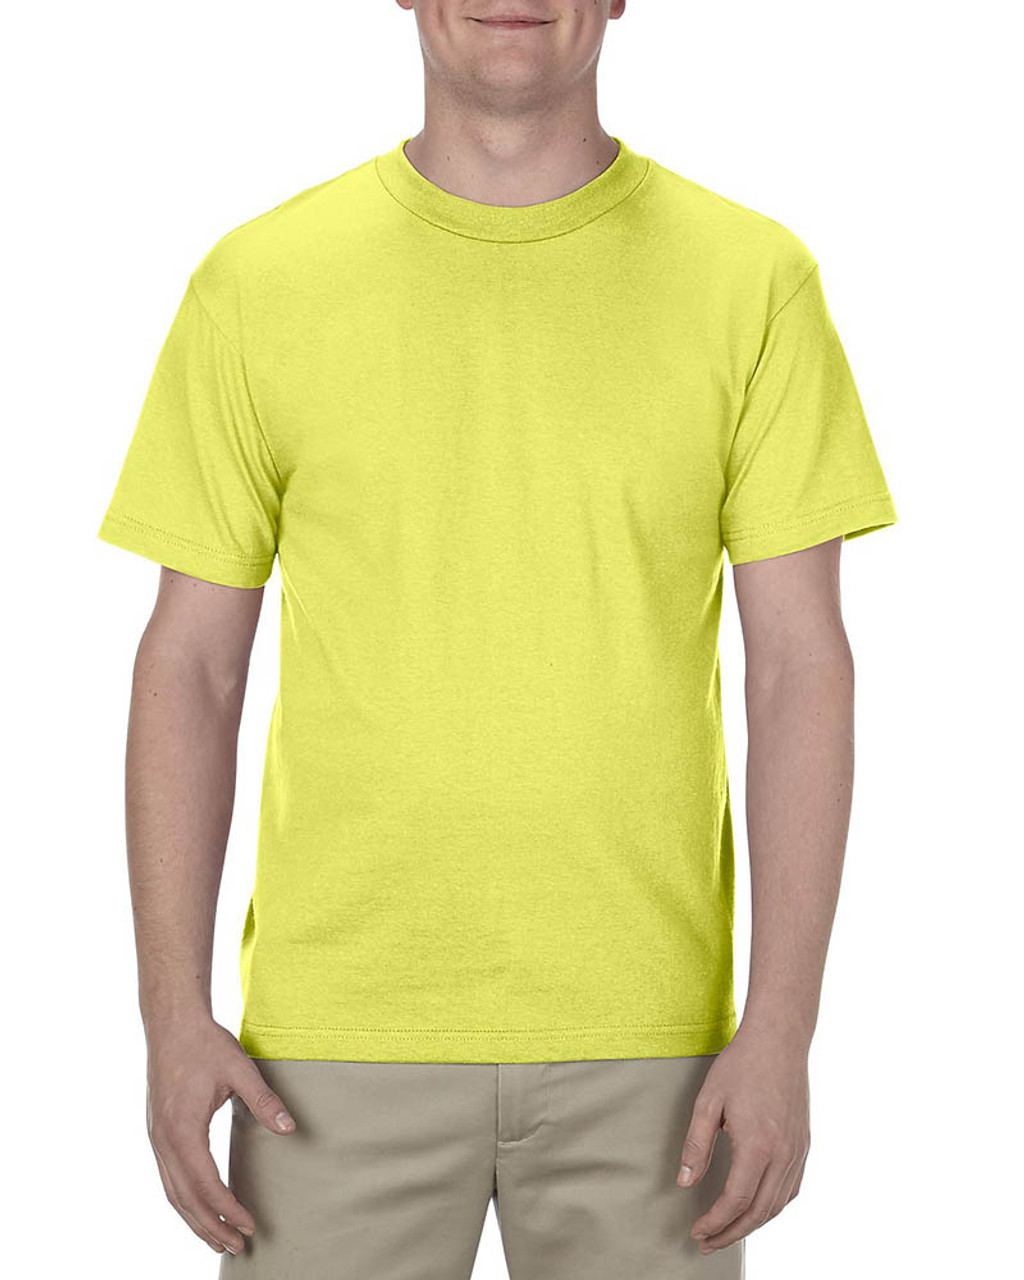 Safety Green - AL1301 Alstyle Adult 6.0 oz., 100% Cotton T-Shirt   BlankClothing.ca